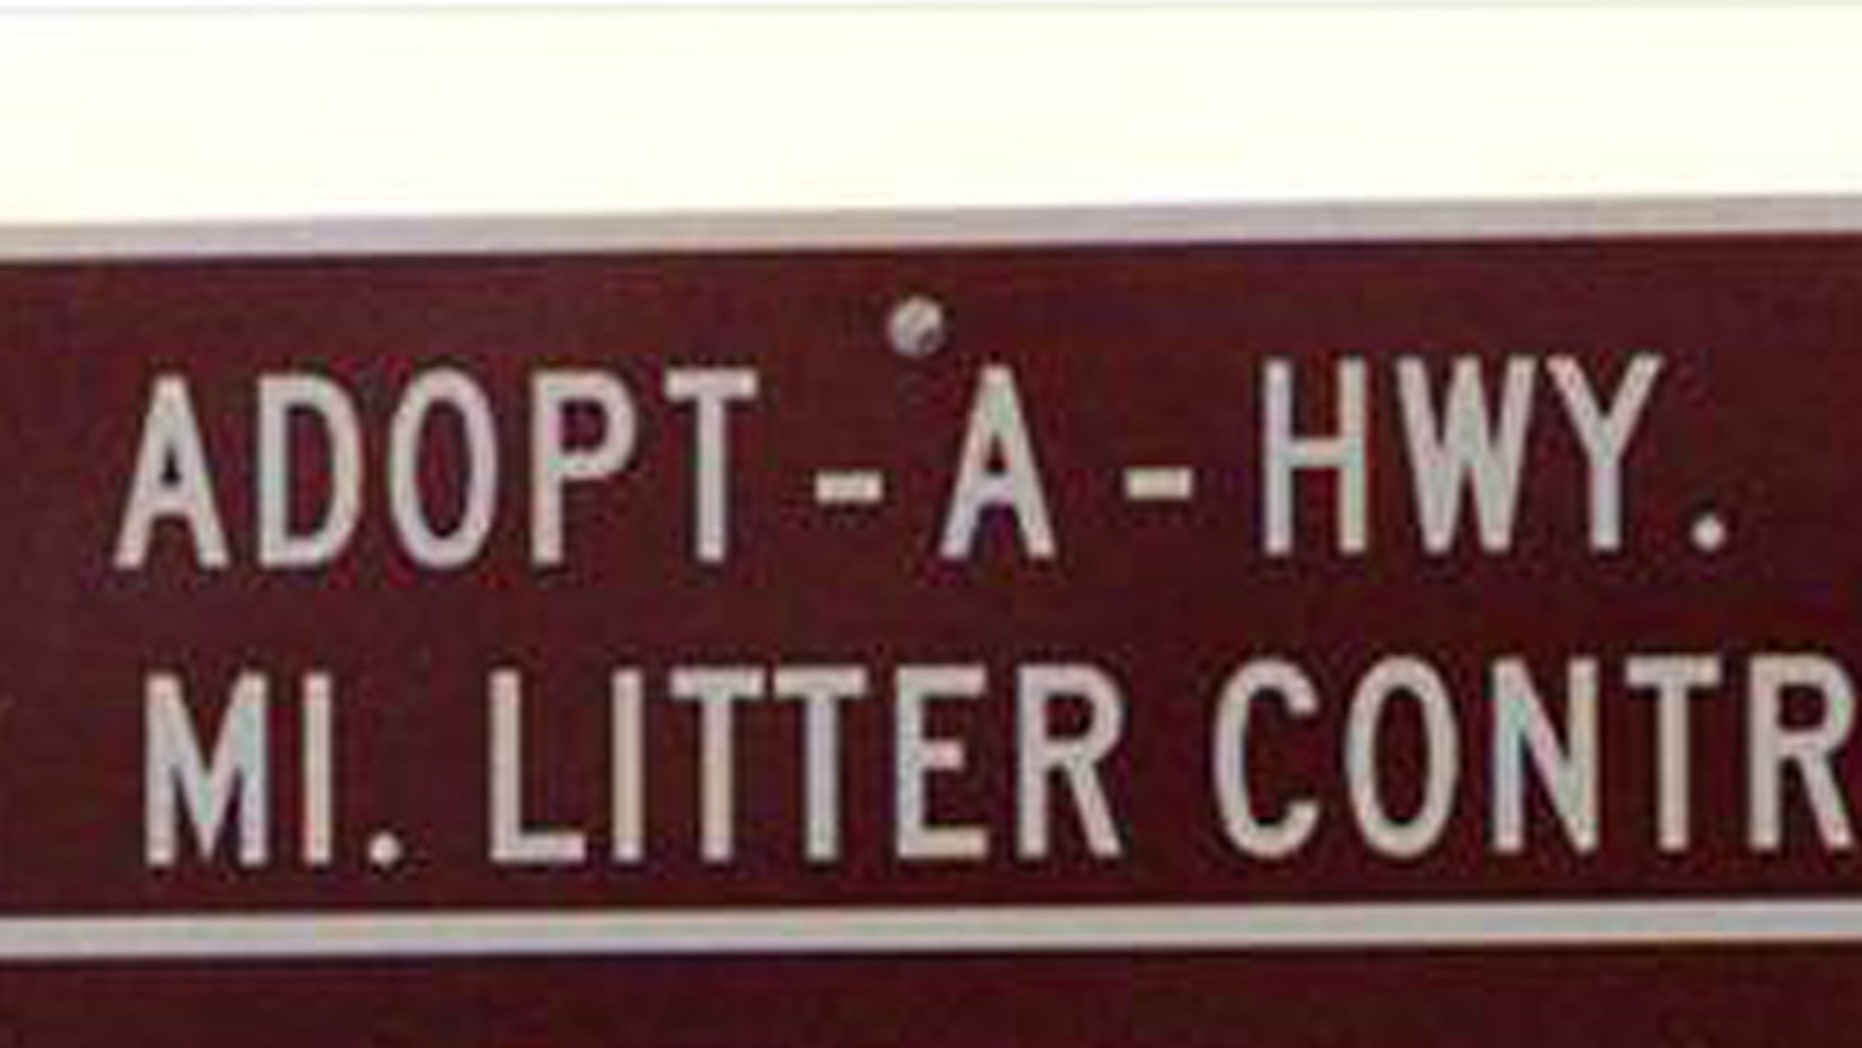 An ADOPT-A-HWY sign in Missouri.